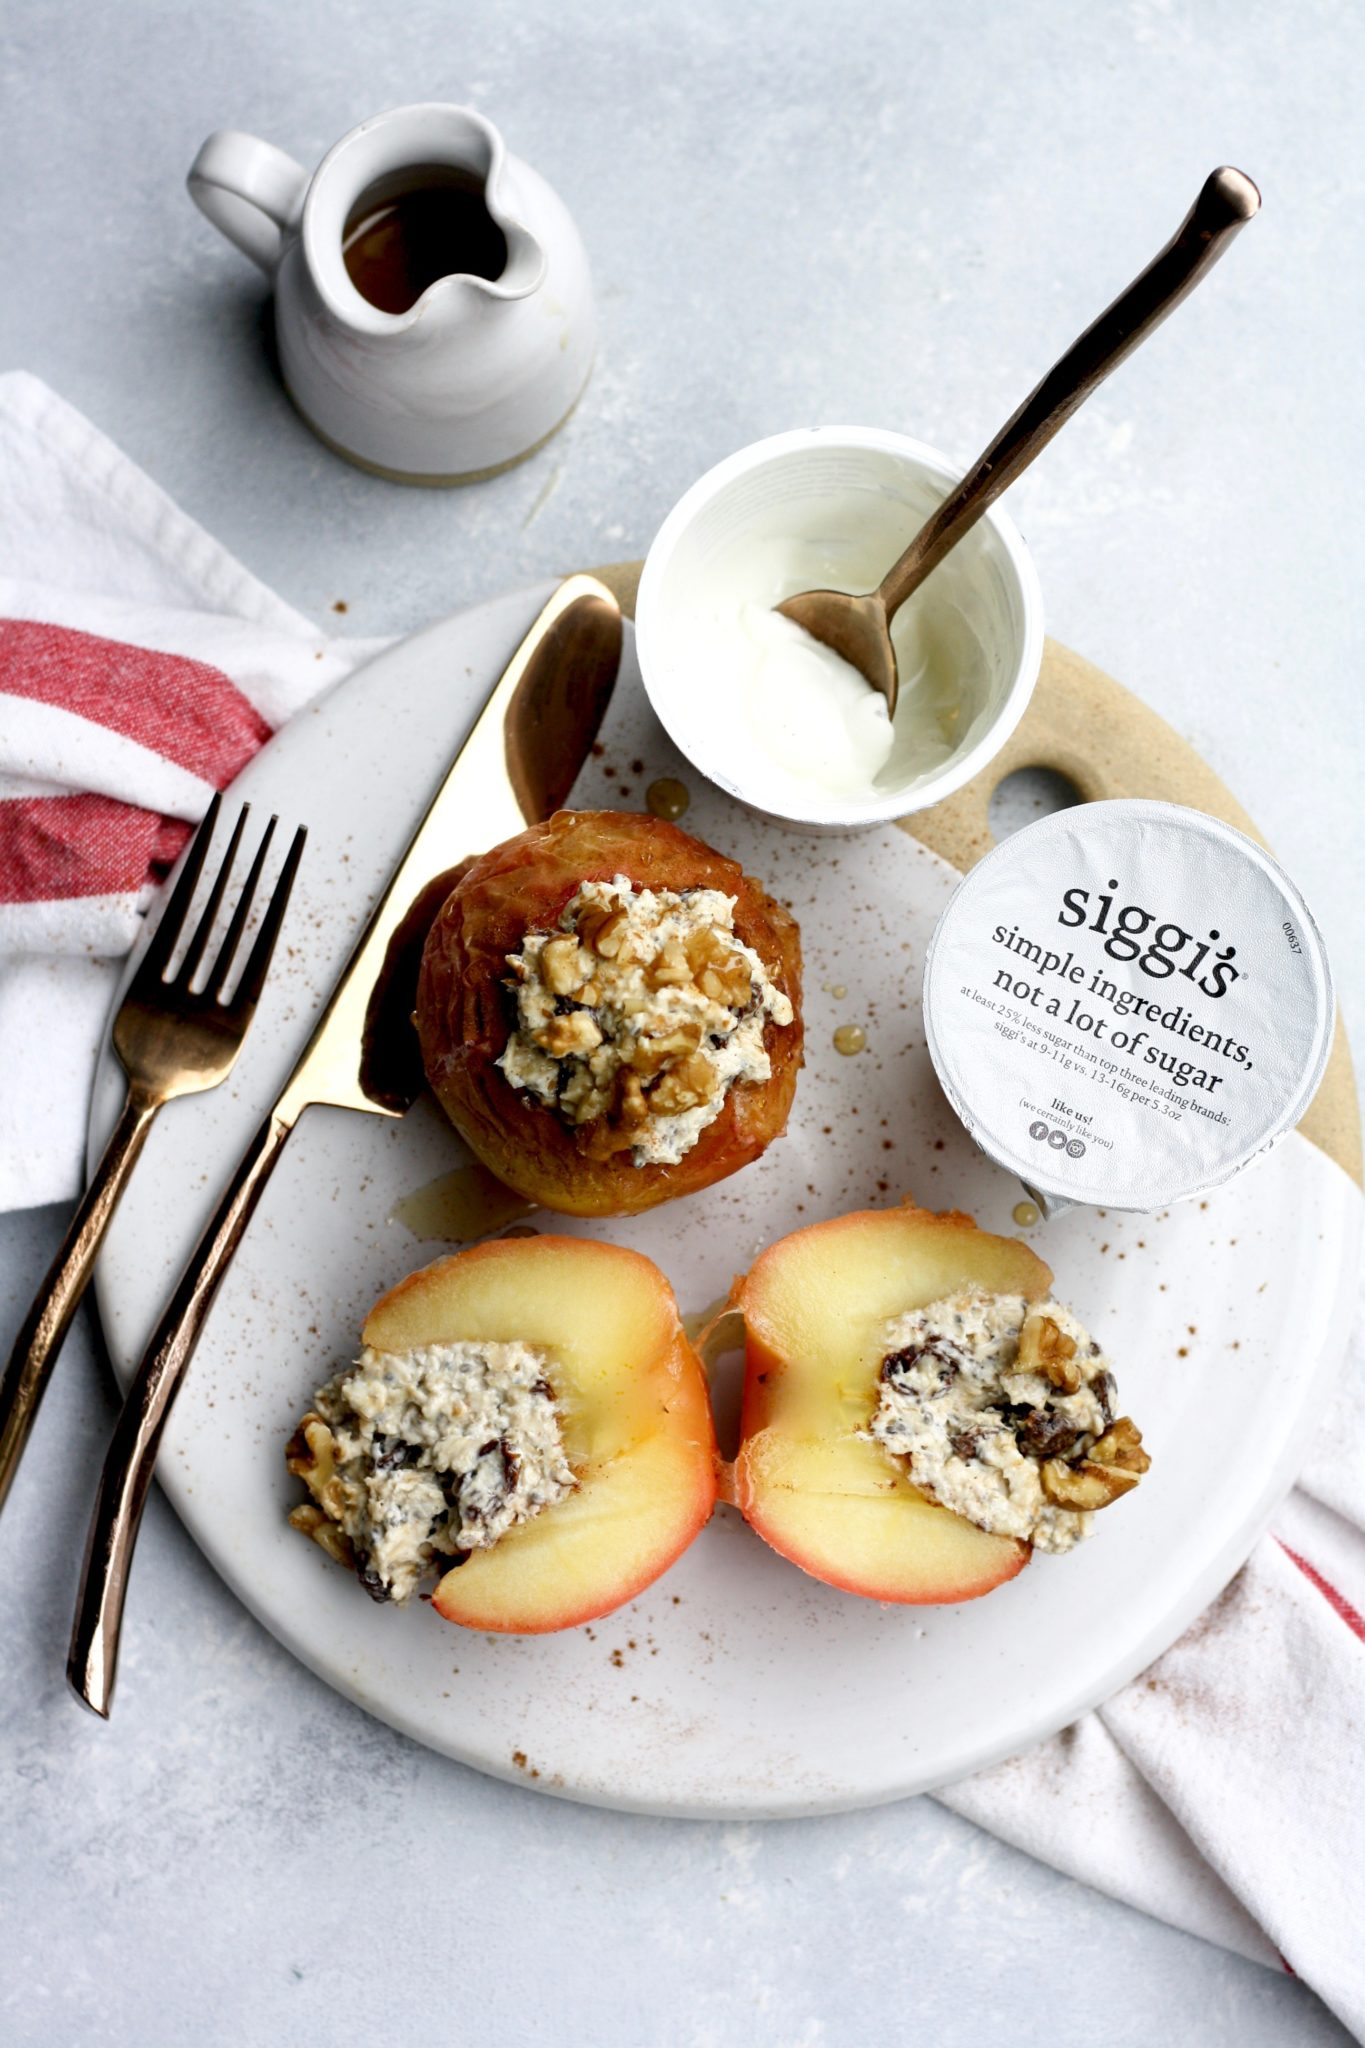 Baked Apples Stuffed With Overnight Vanilla Cinnamon Raisin Walnut Oats Cait S Plate